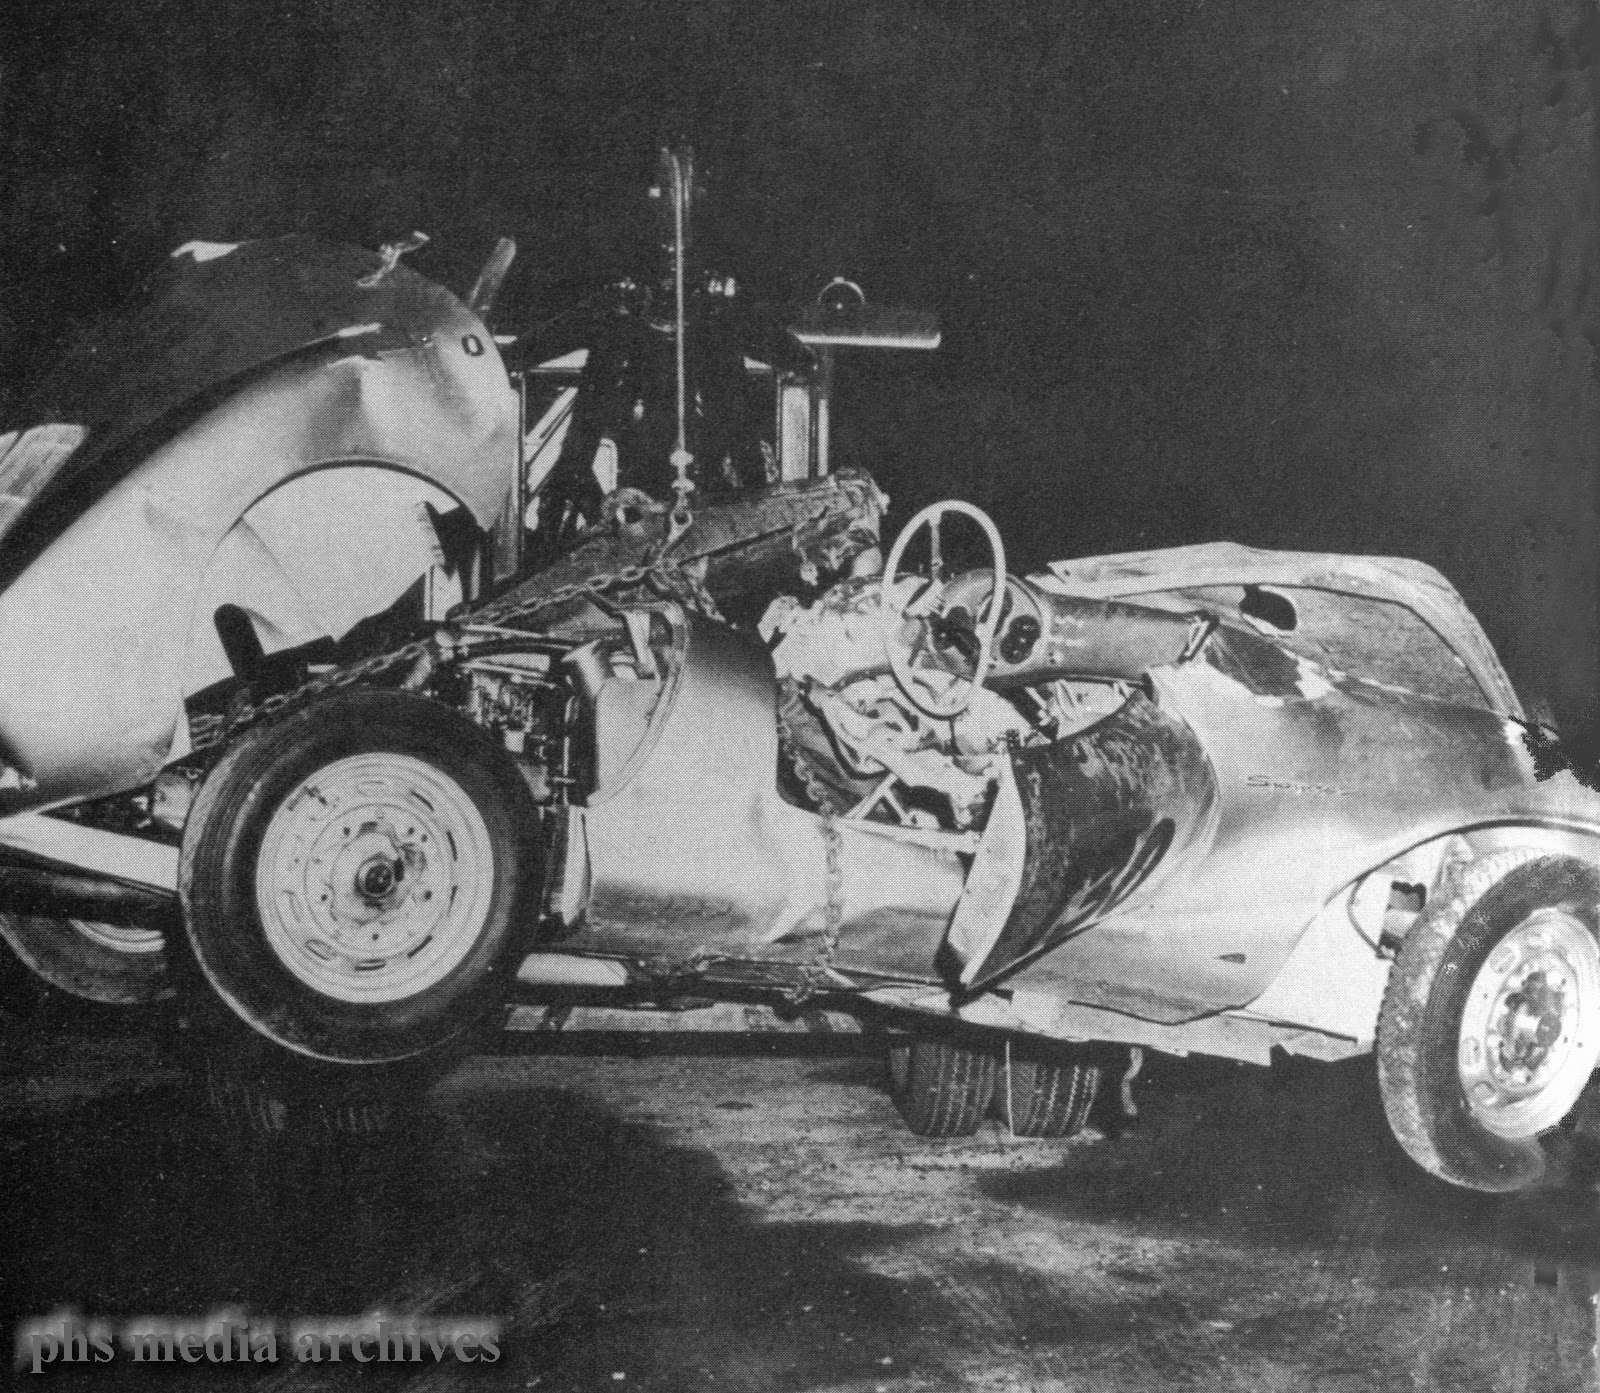 Lost Star Cars James Deans Porsche 550 Spyder Updated W News Of 356a Wiring Diagram Photo Wreck Taken After Dusk Near Cholame Chest Bent The Steering Wheel And His Forehead Was Caved In Death Virtually Instantaneous